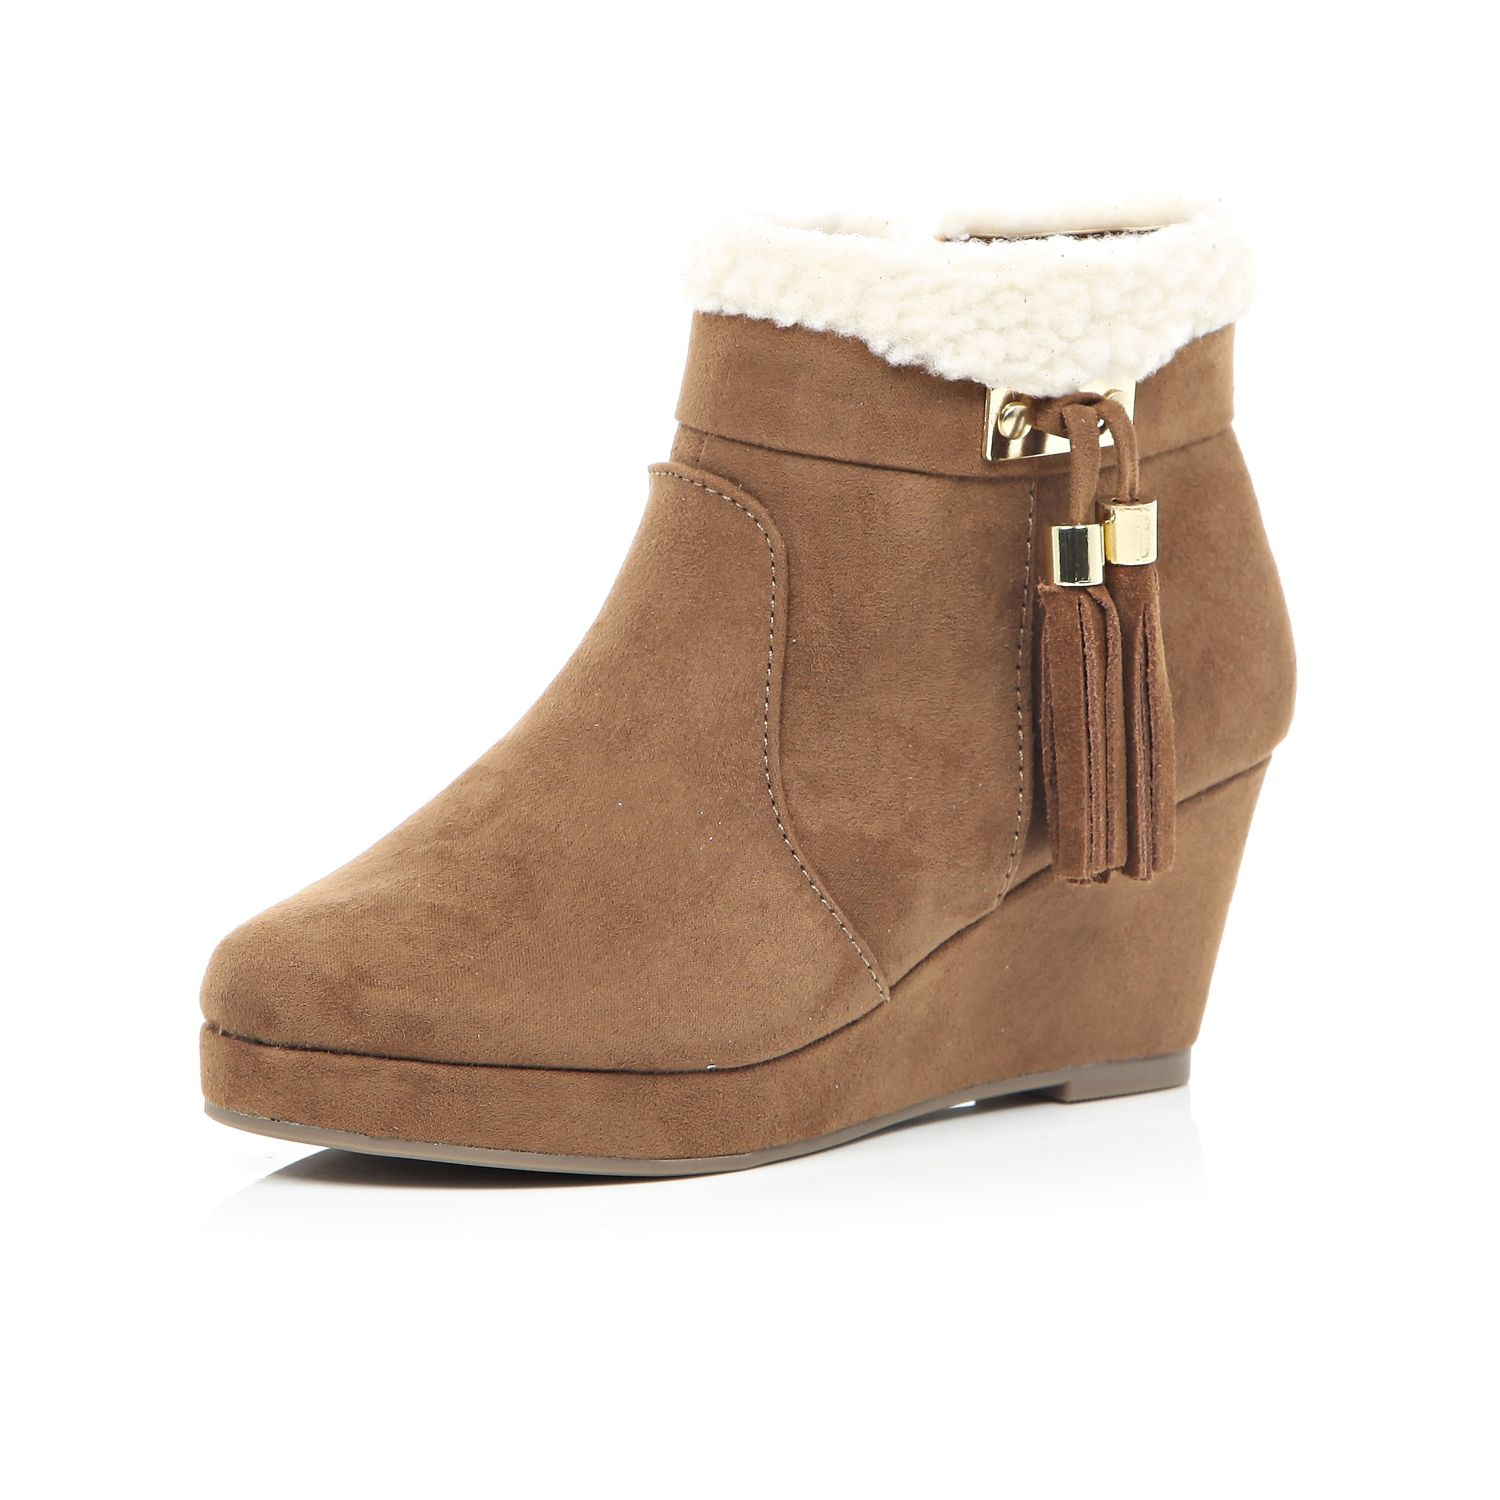 River island Girls Brown Wedge Tassel Boots in Brown | Lyst